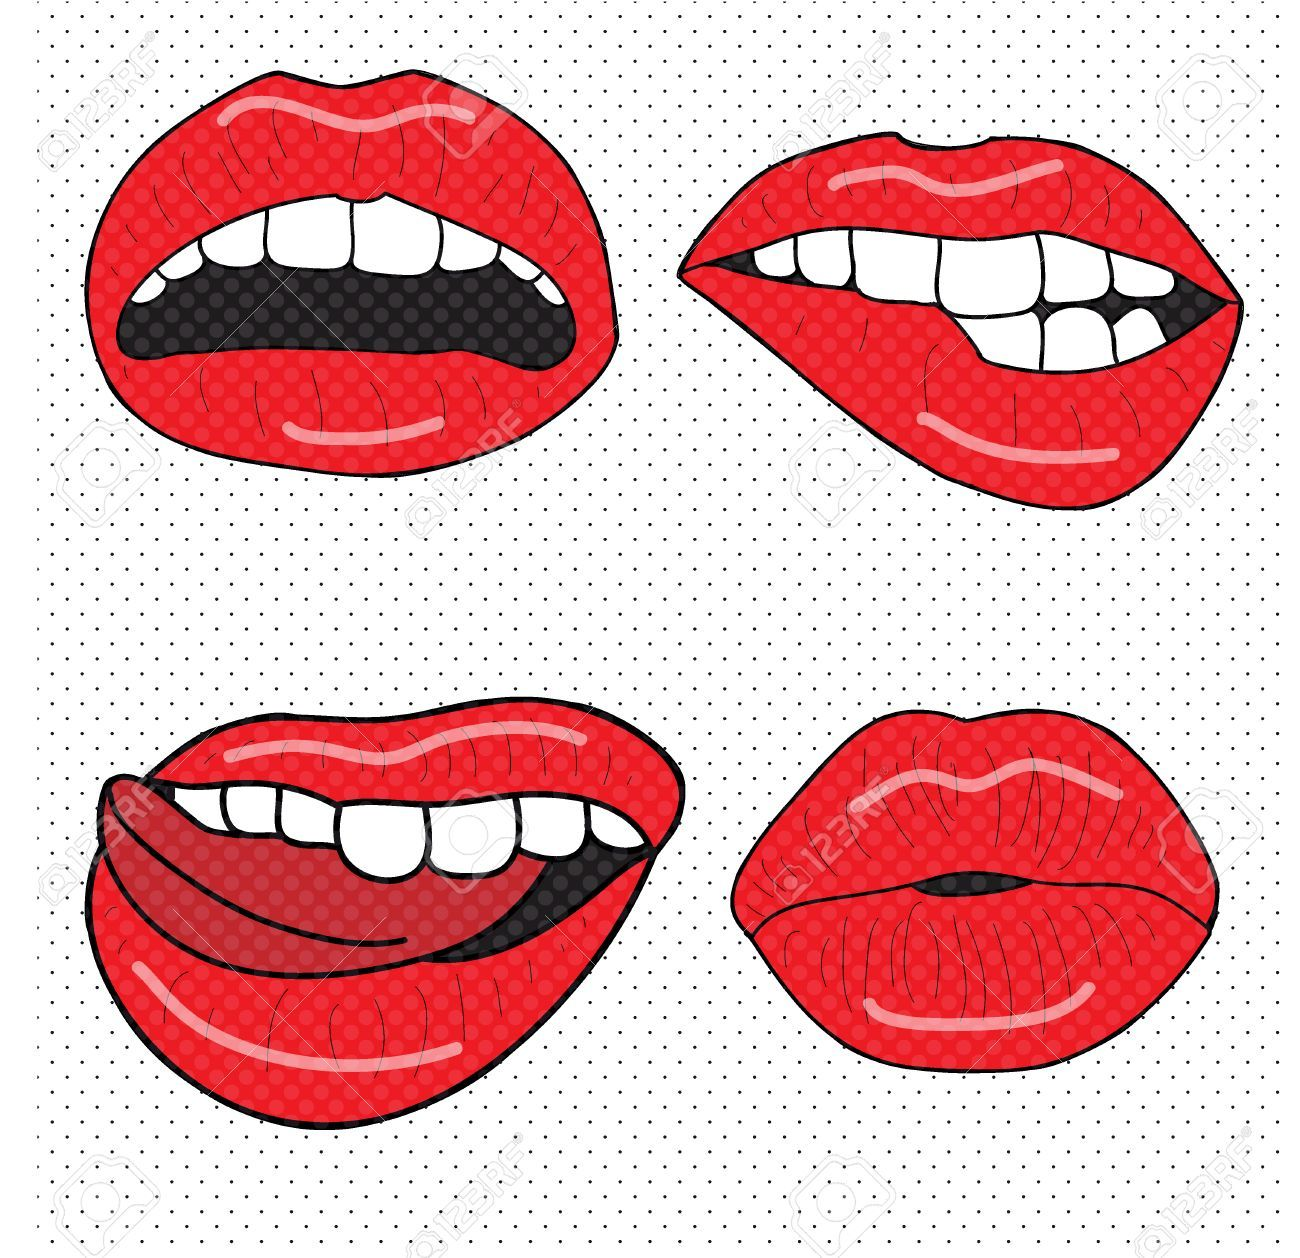 Pop Art Lips Drawing